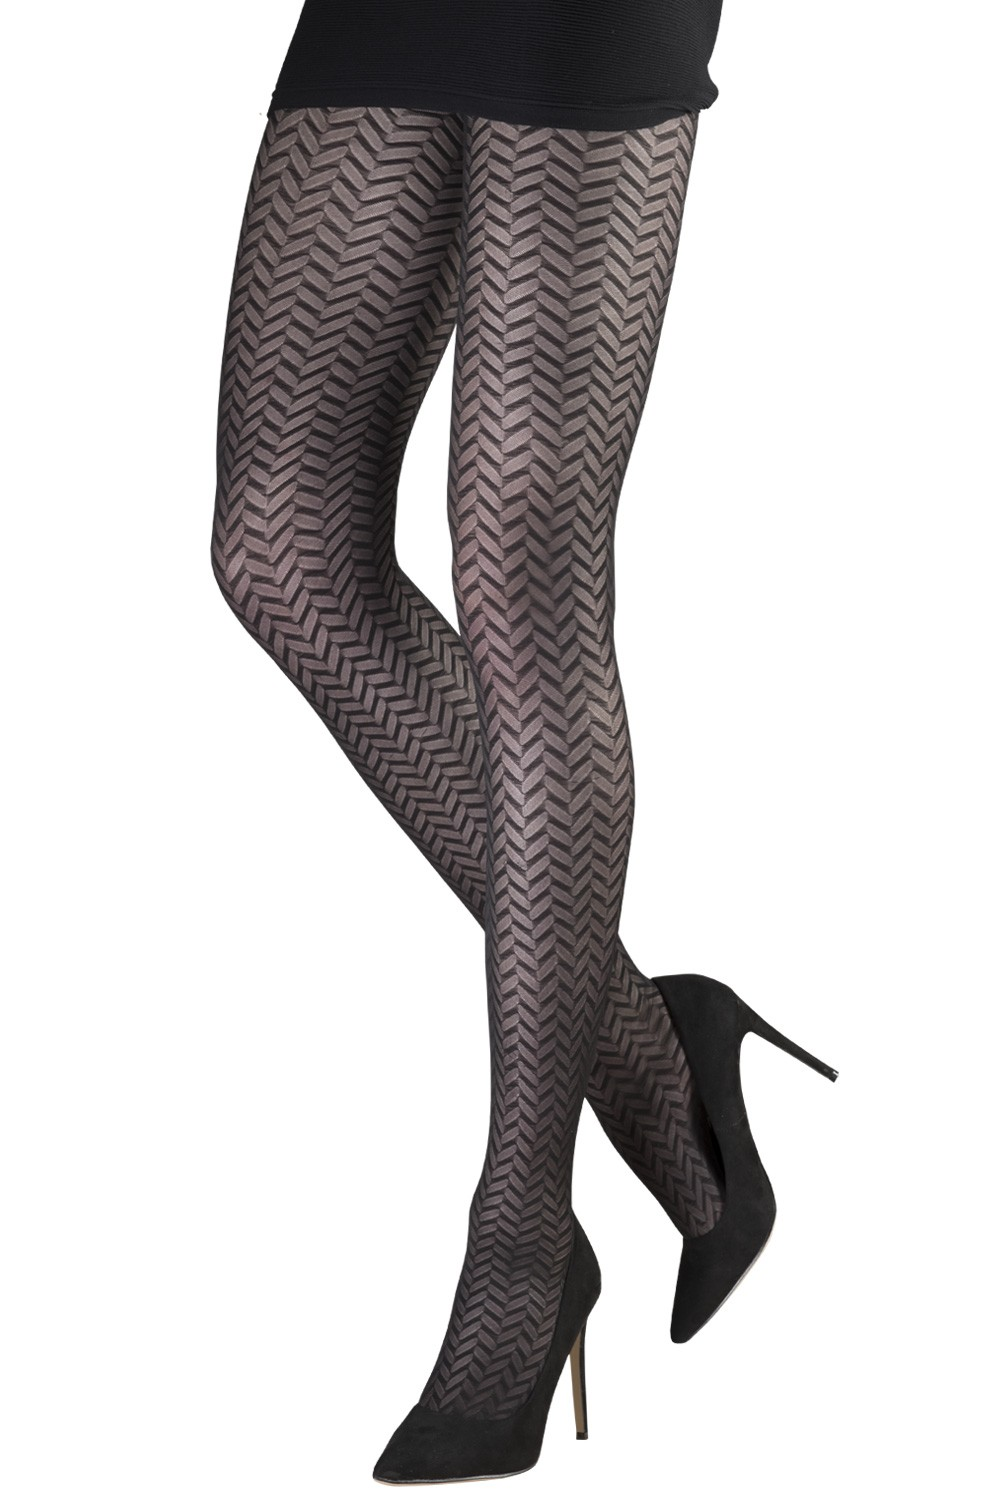 7ae746aa4fb4f Small Herringbone Tights| Tights & Hosiery | Women | Emilio Cavallini